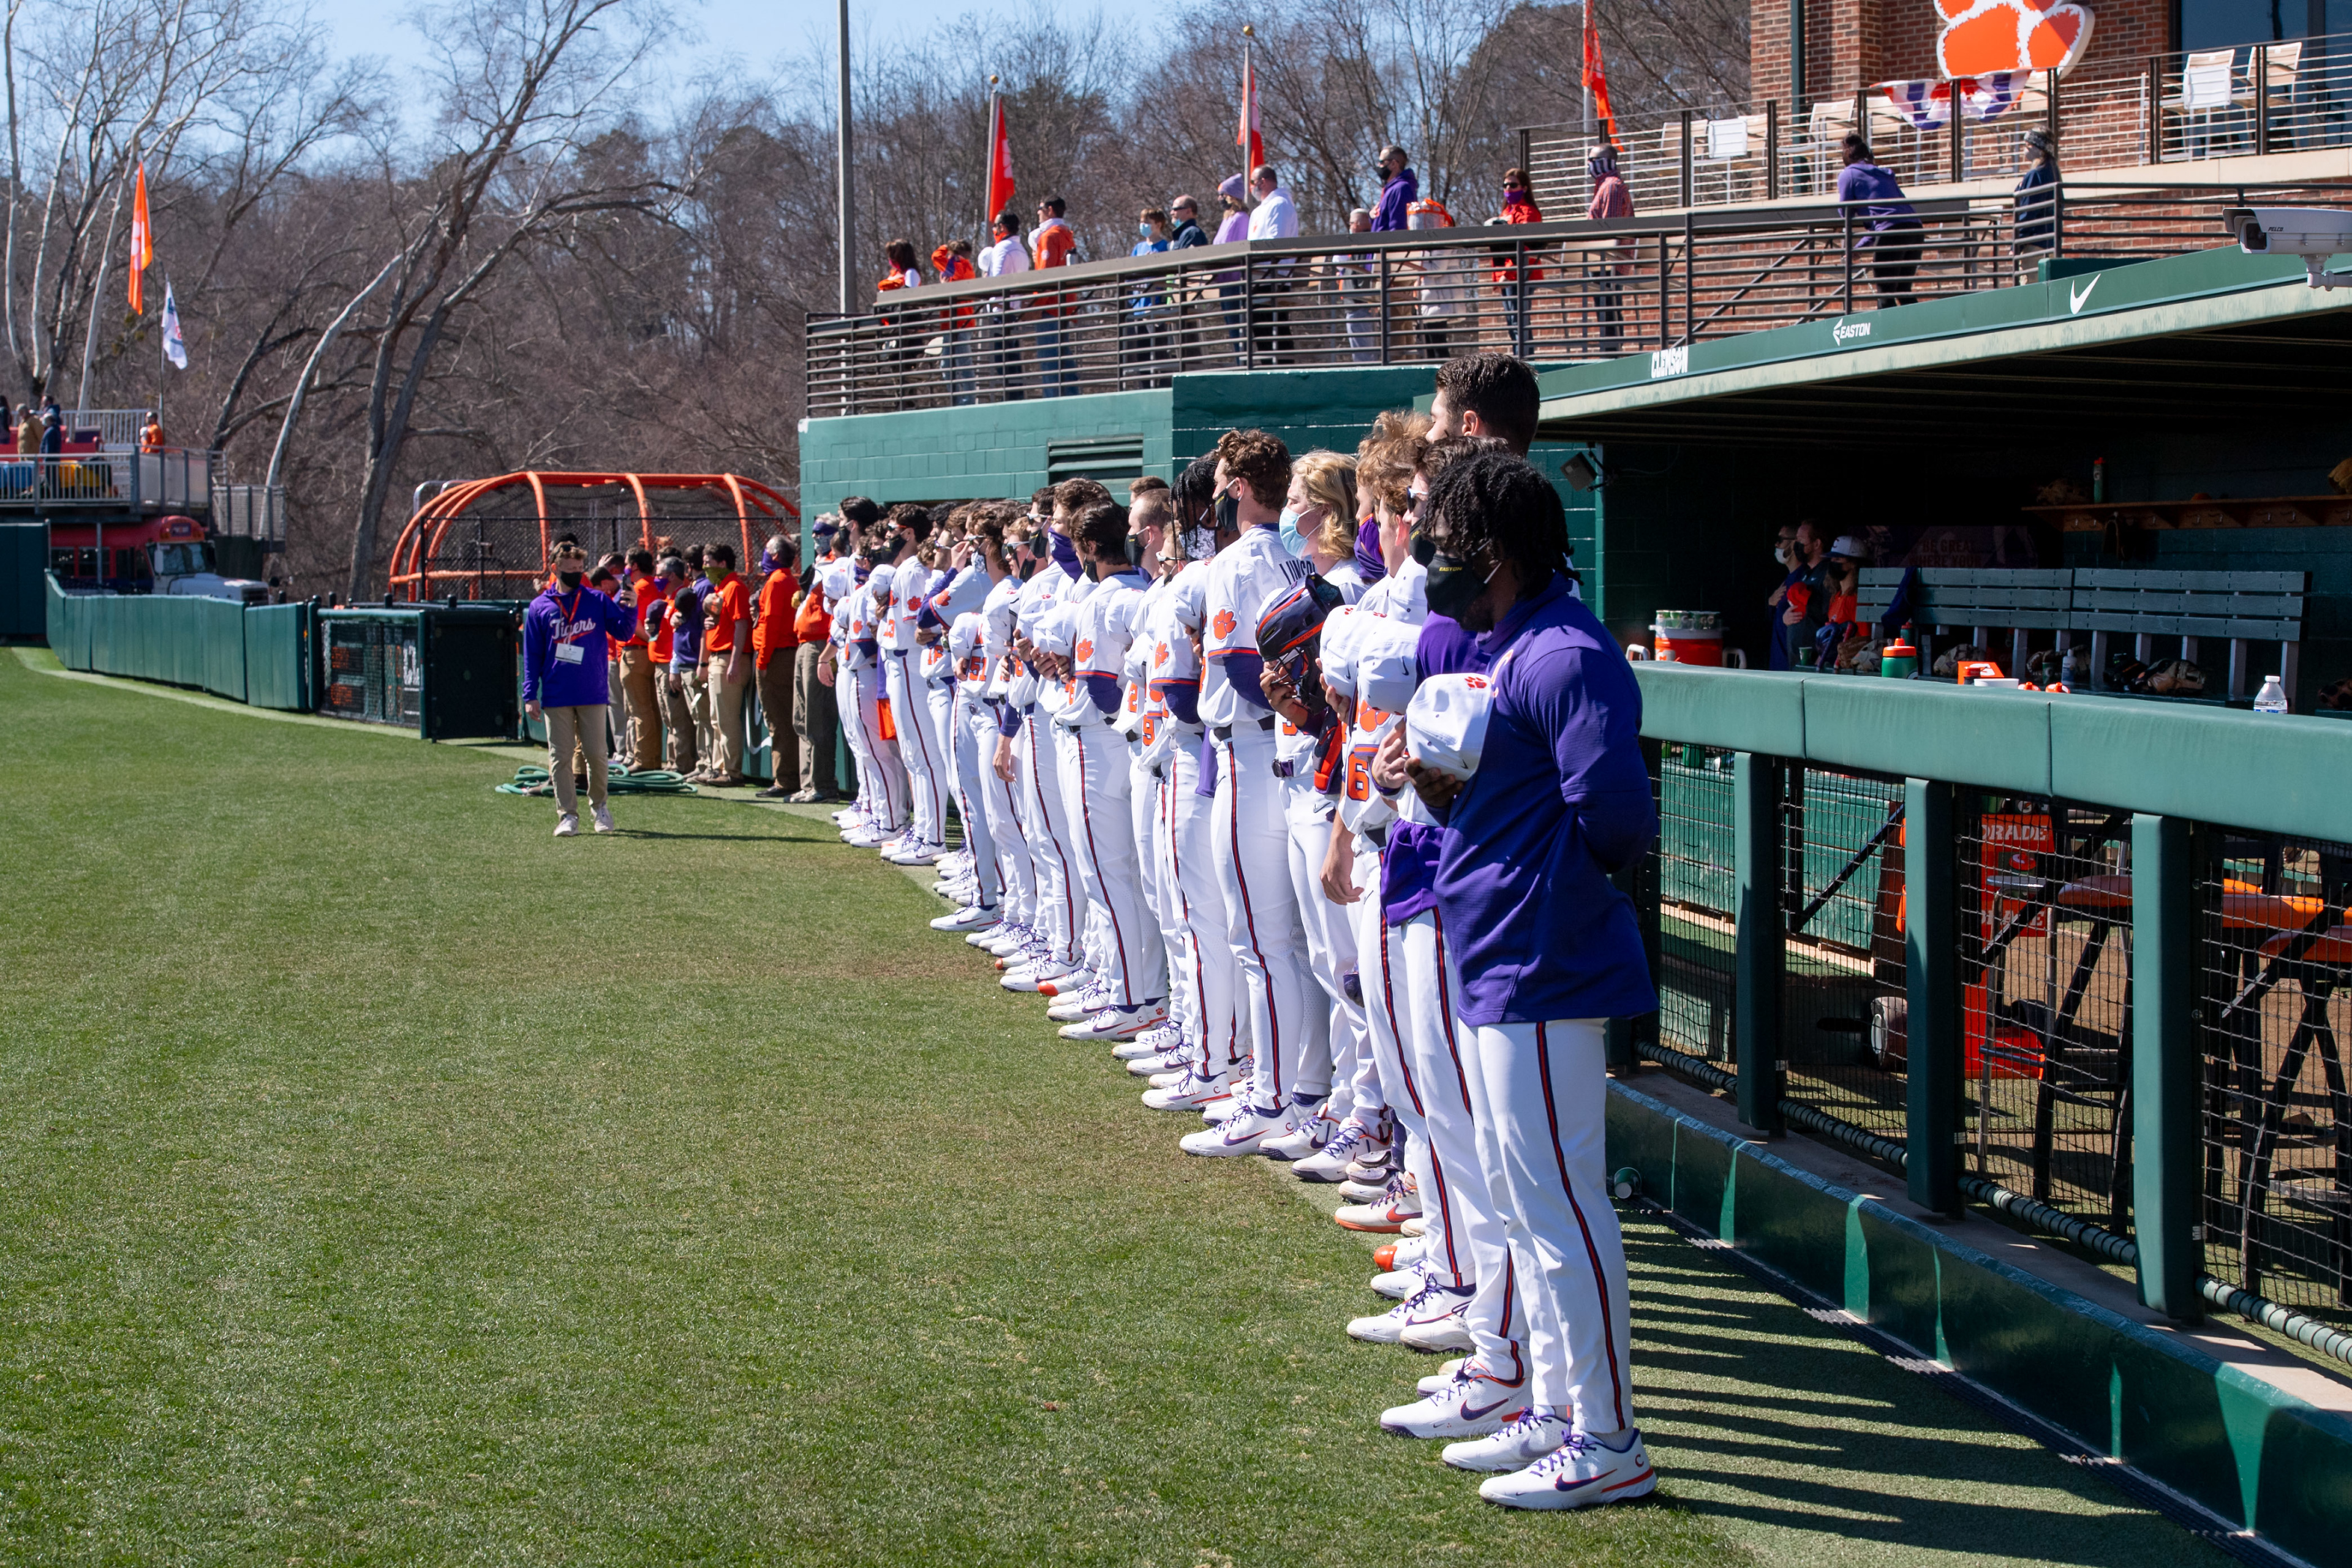 Clemson defeated Cincinnati 8-7 Sunday, February 21, 2021 at Doug Kingsmore Stadium to complete a three-game sweep over the Bearcats. John Bolton photo courtesy of the ACC